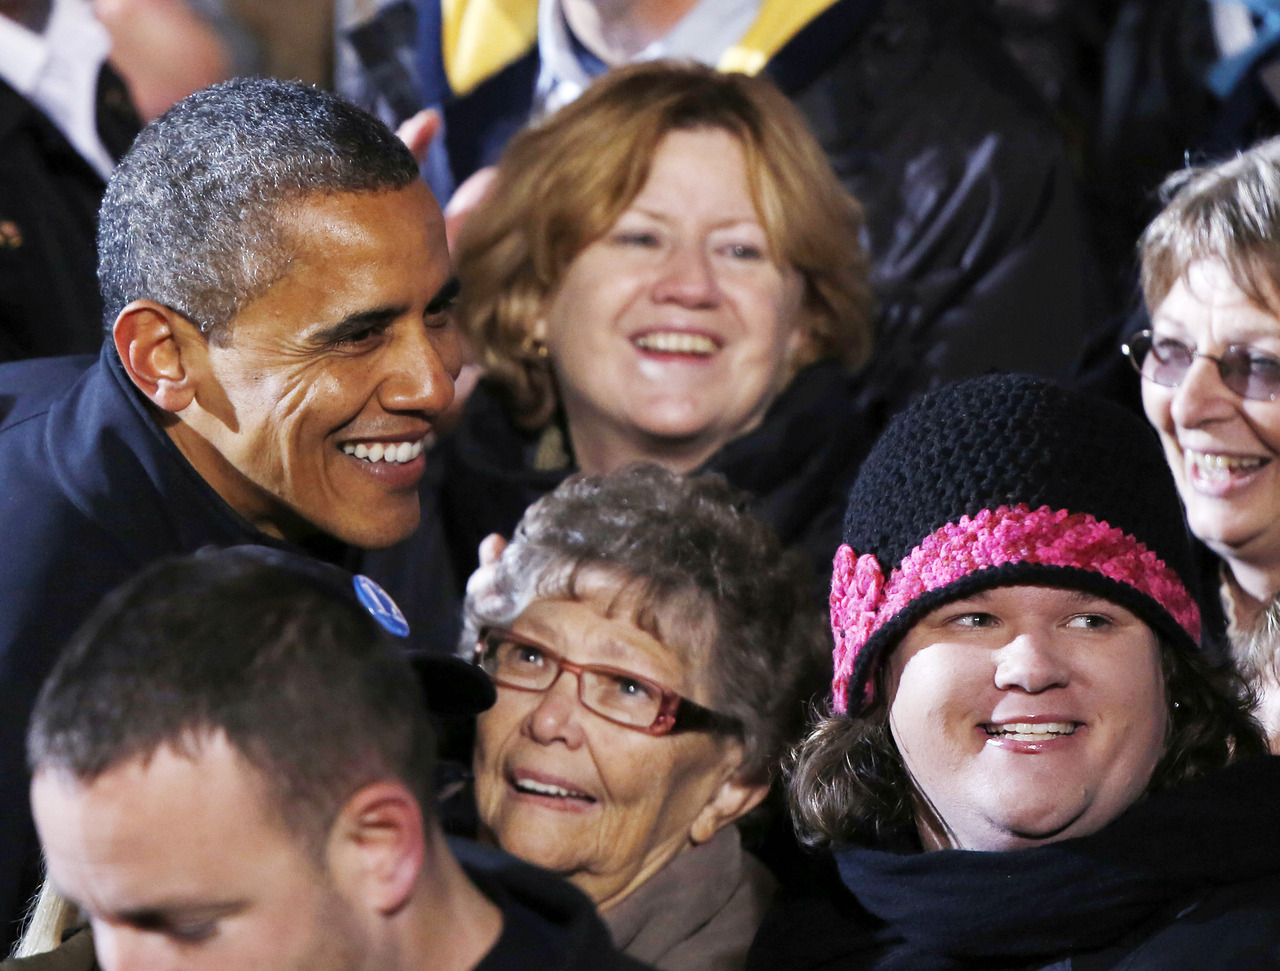 FLASH: MSNBC, CBS project Barack Obama wins re-election as U.S. President. [Live coverage] Photo: U.S. President Barack Obama greets supporters on his last night of campaigning in downtown Des Moines, Iowa, November 5, 2012. An emotional President Obama ended his final campaign on Monday in Iowa, the place that launched his first White House bid and that could hold the key to his political future. [REUTERS/Larry Downing]